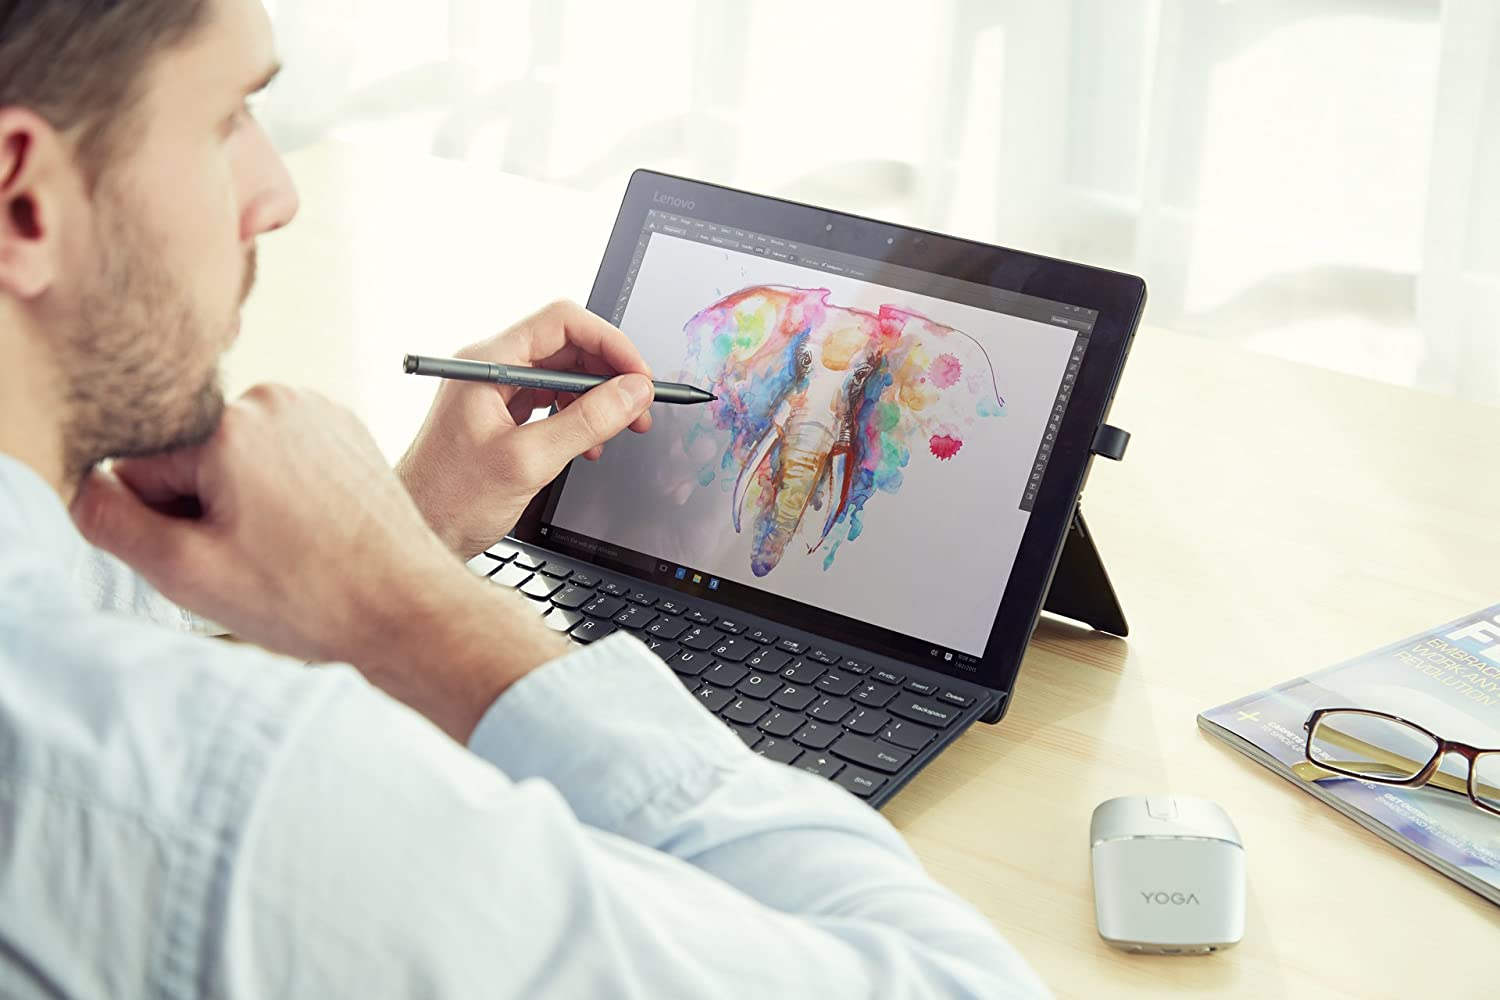 Amazon.com: Lenovo Active Pen 2,Up to 4096 Leves of Pressure ...